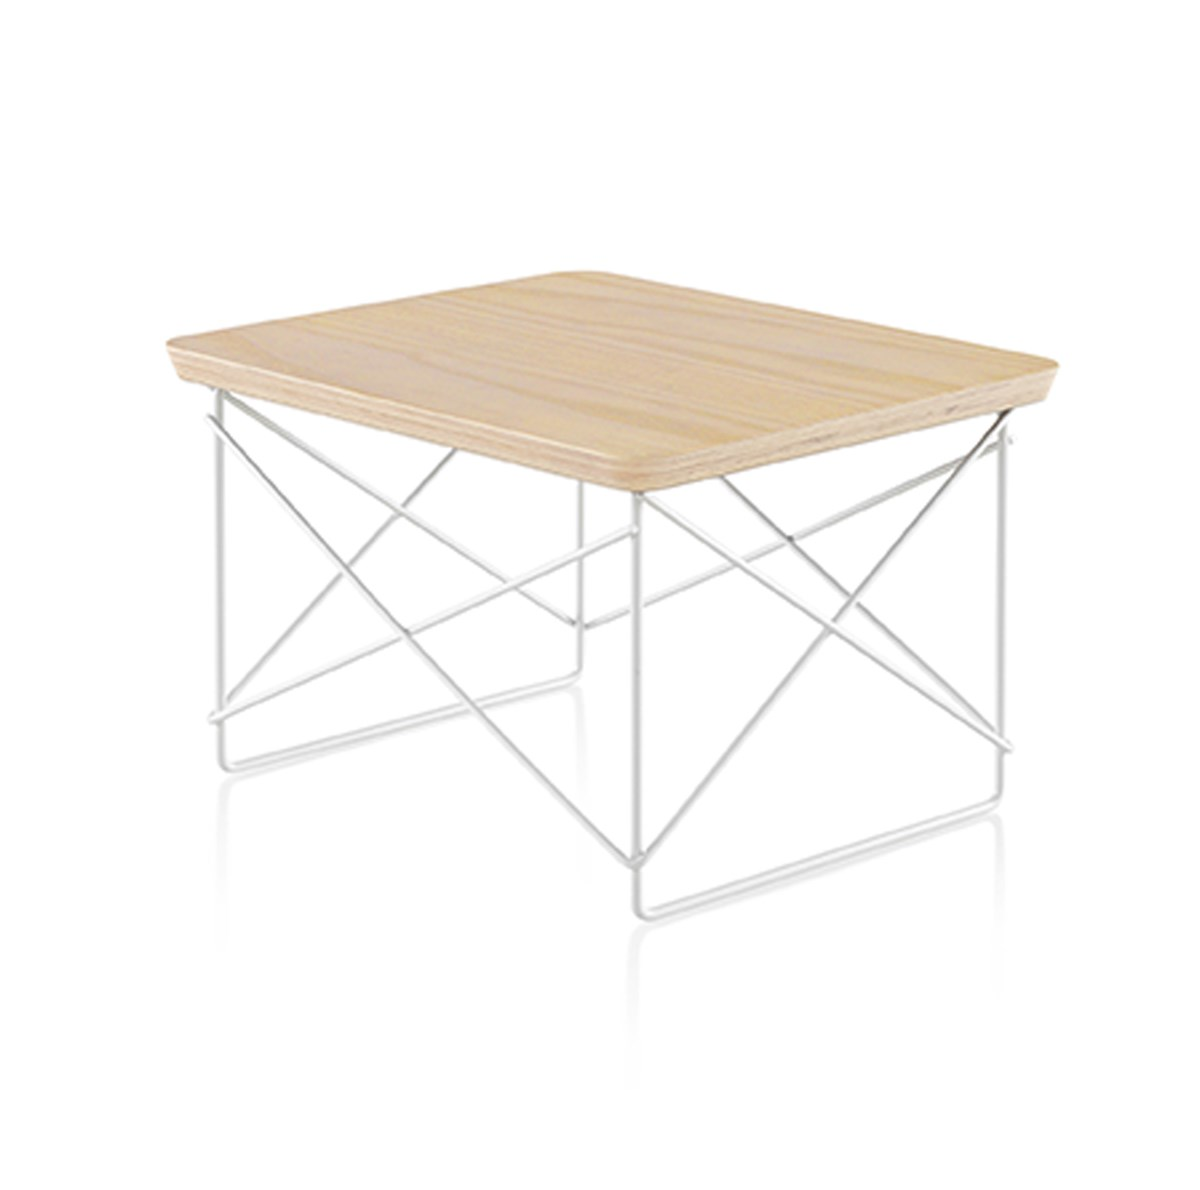 Herman-Miller-Charles-&-Ray-Eames-Eames®-Wire-Base-Low-Table-Matisse-1